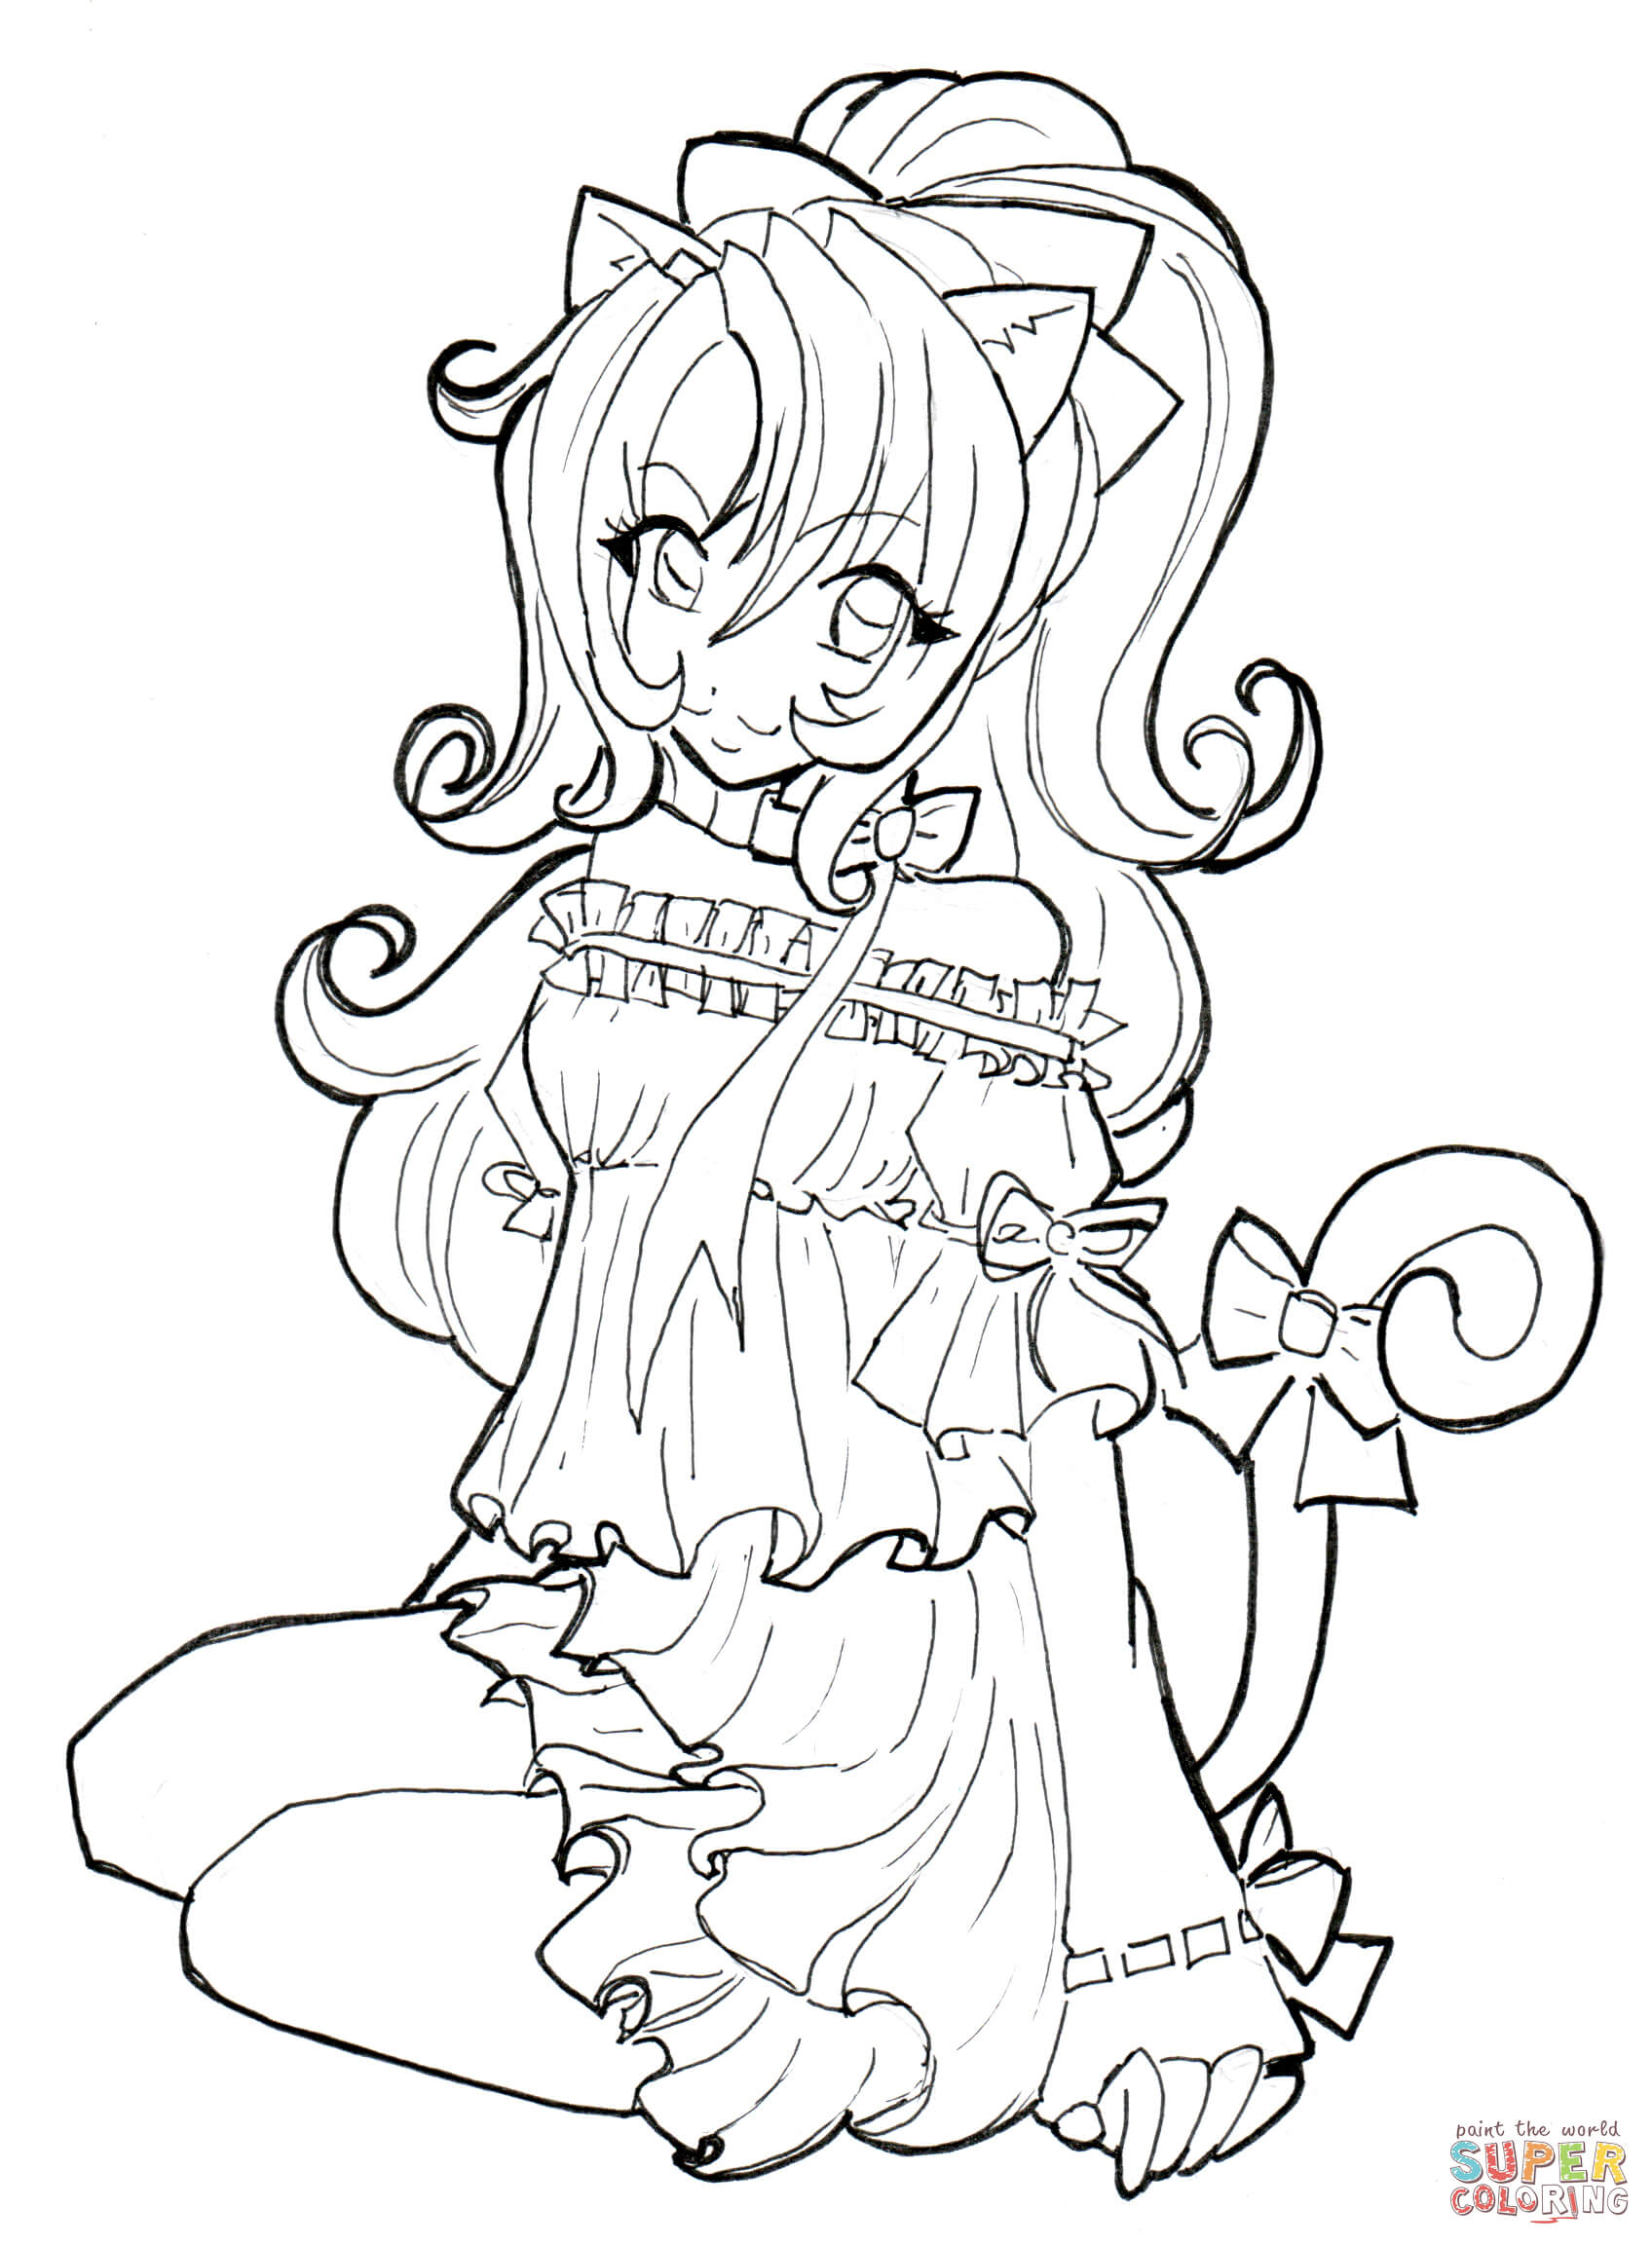 Anime Fox Girl Cute Coloring Pages